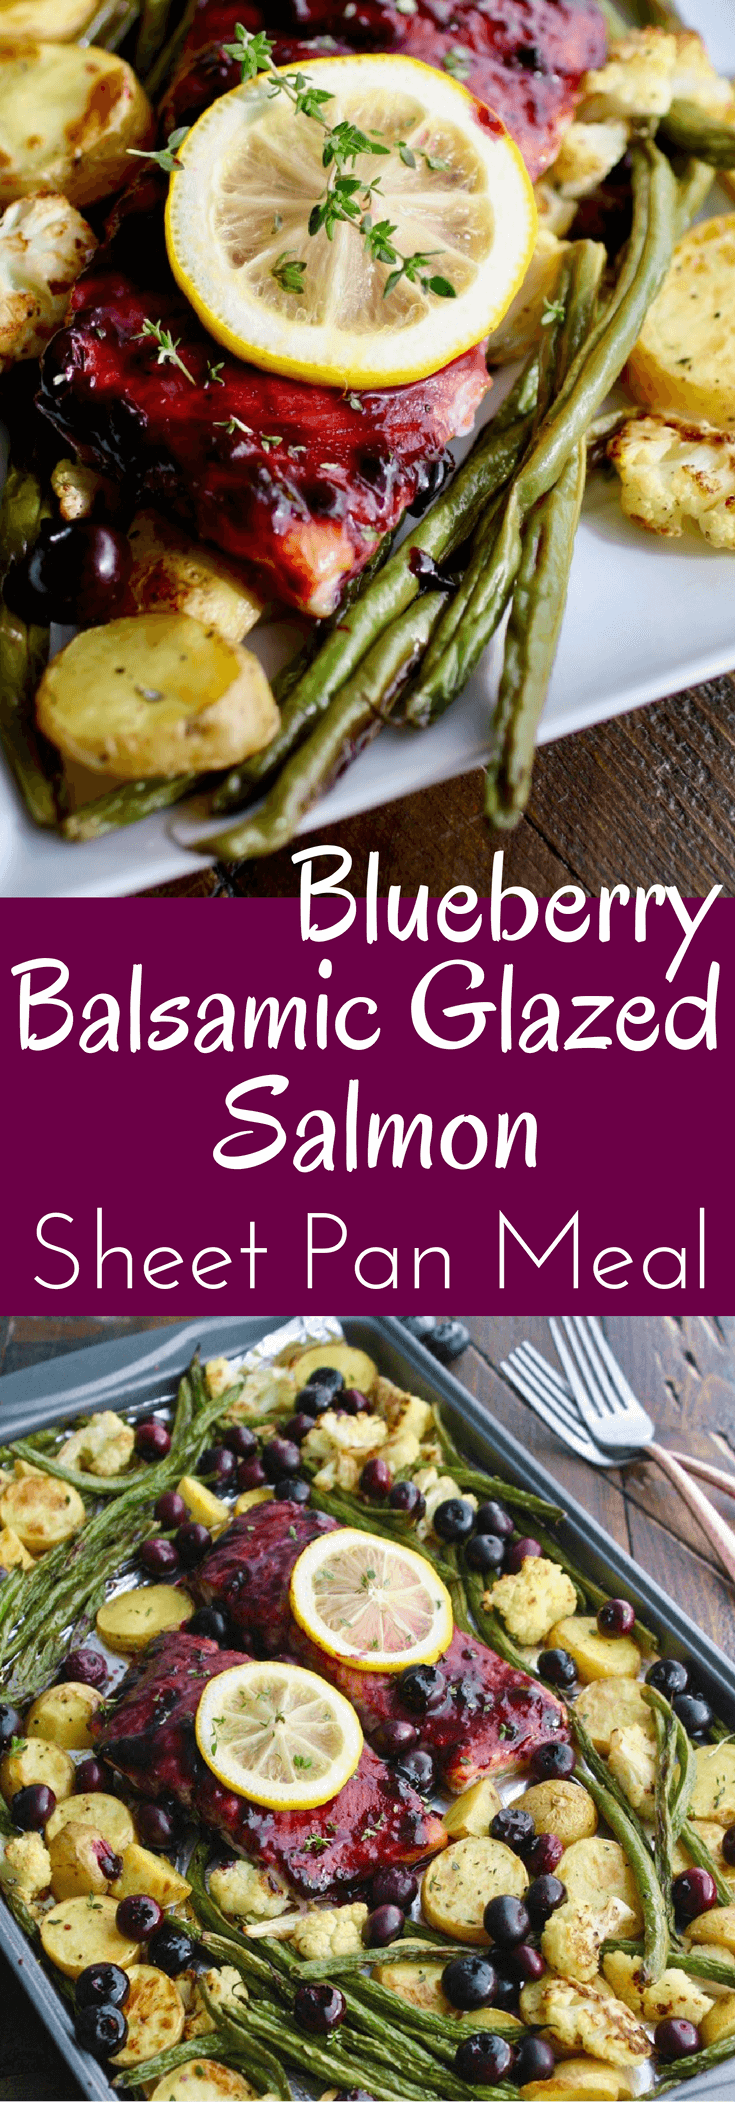 You'll really enjoy this delightful, easy-to-make dish: Sheet Pan Blueberry-Balsamic Glazed Salmon